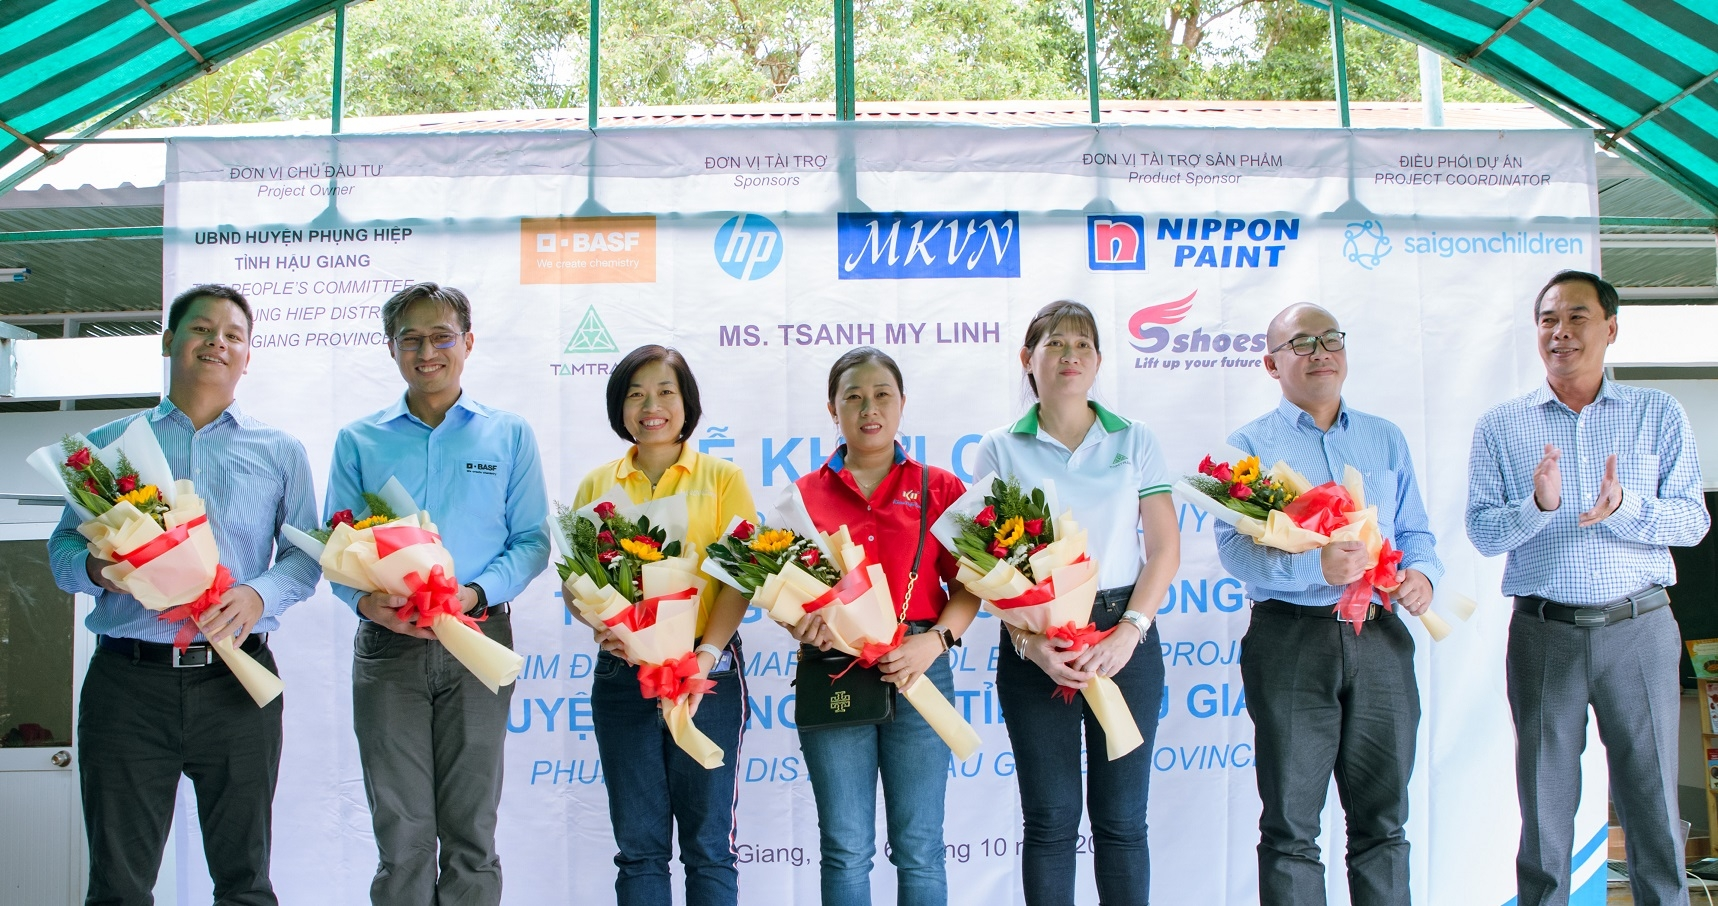 basf partners up with customers to rebuild school in remote area in hau giang vietnam